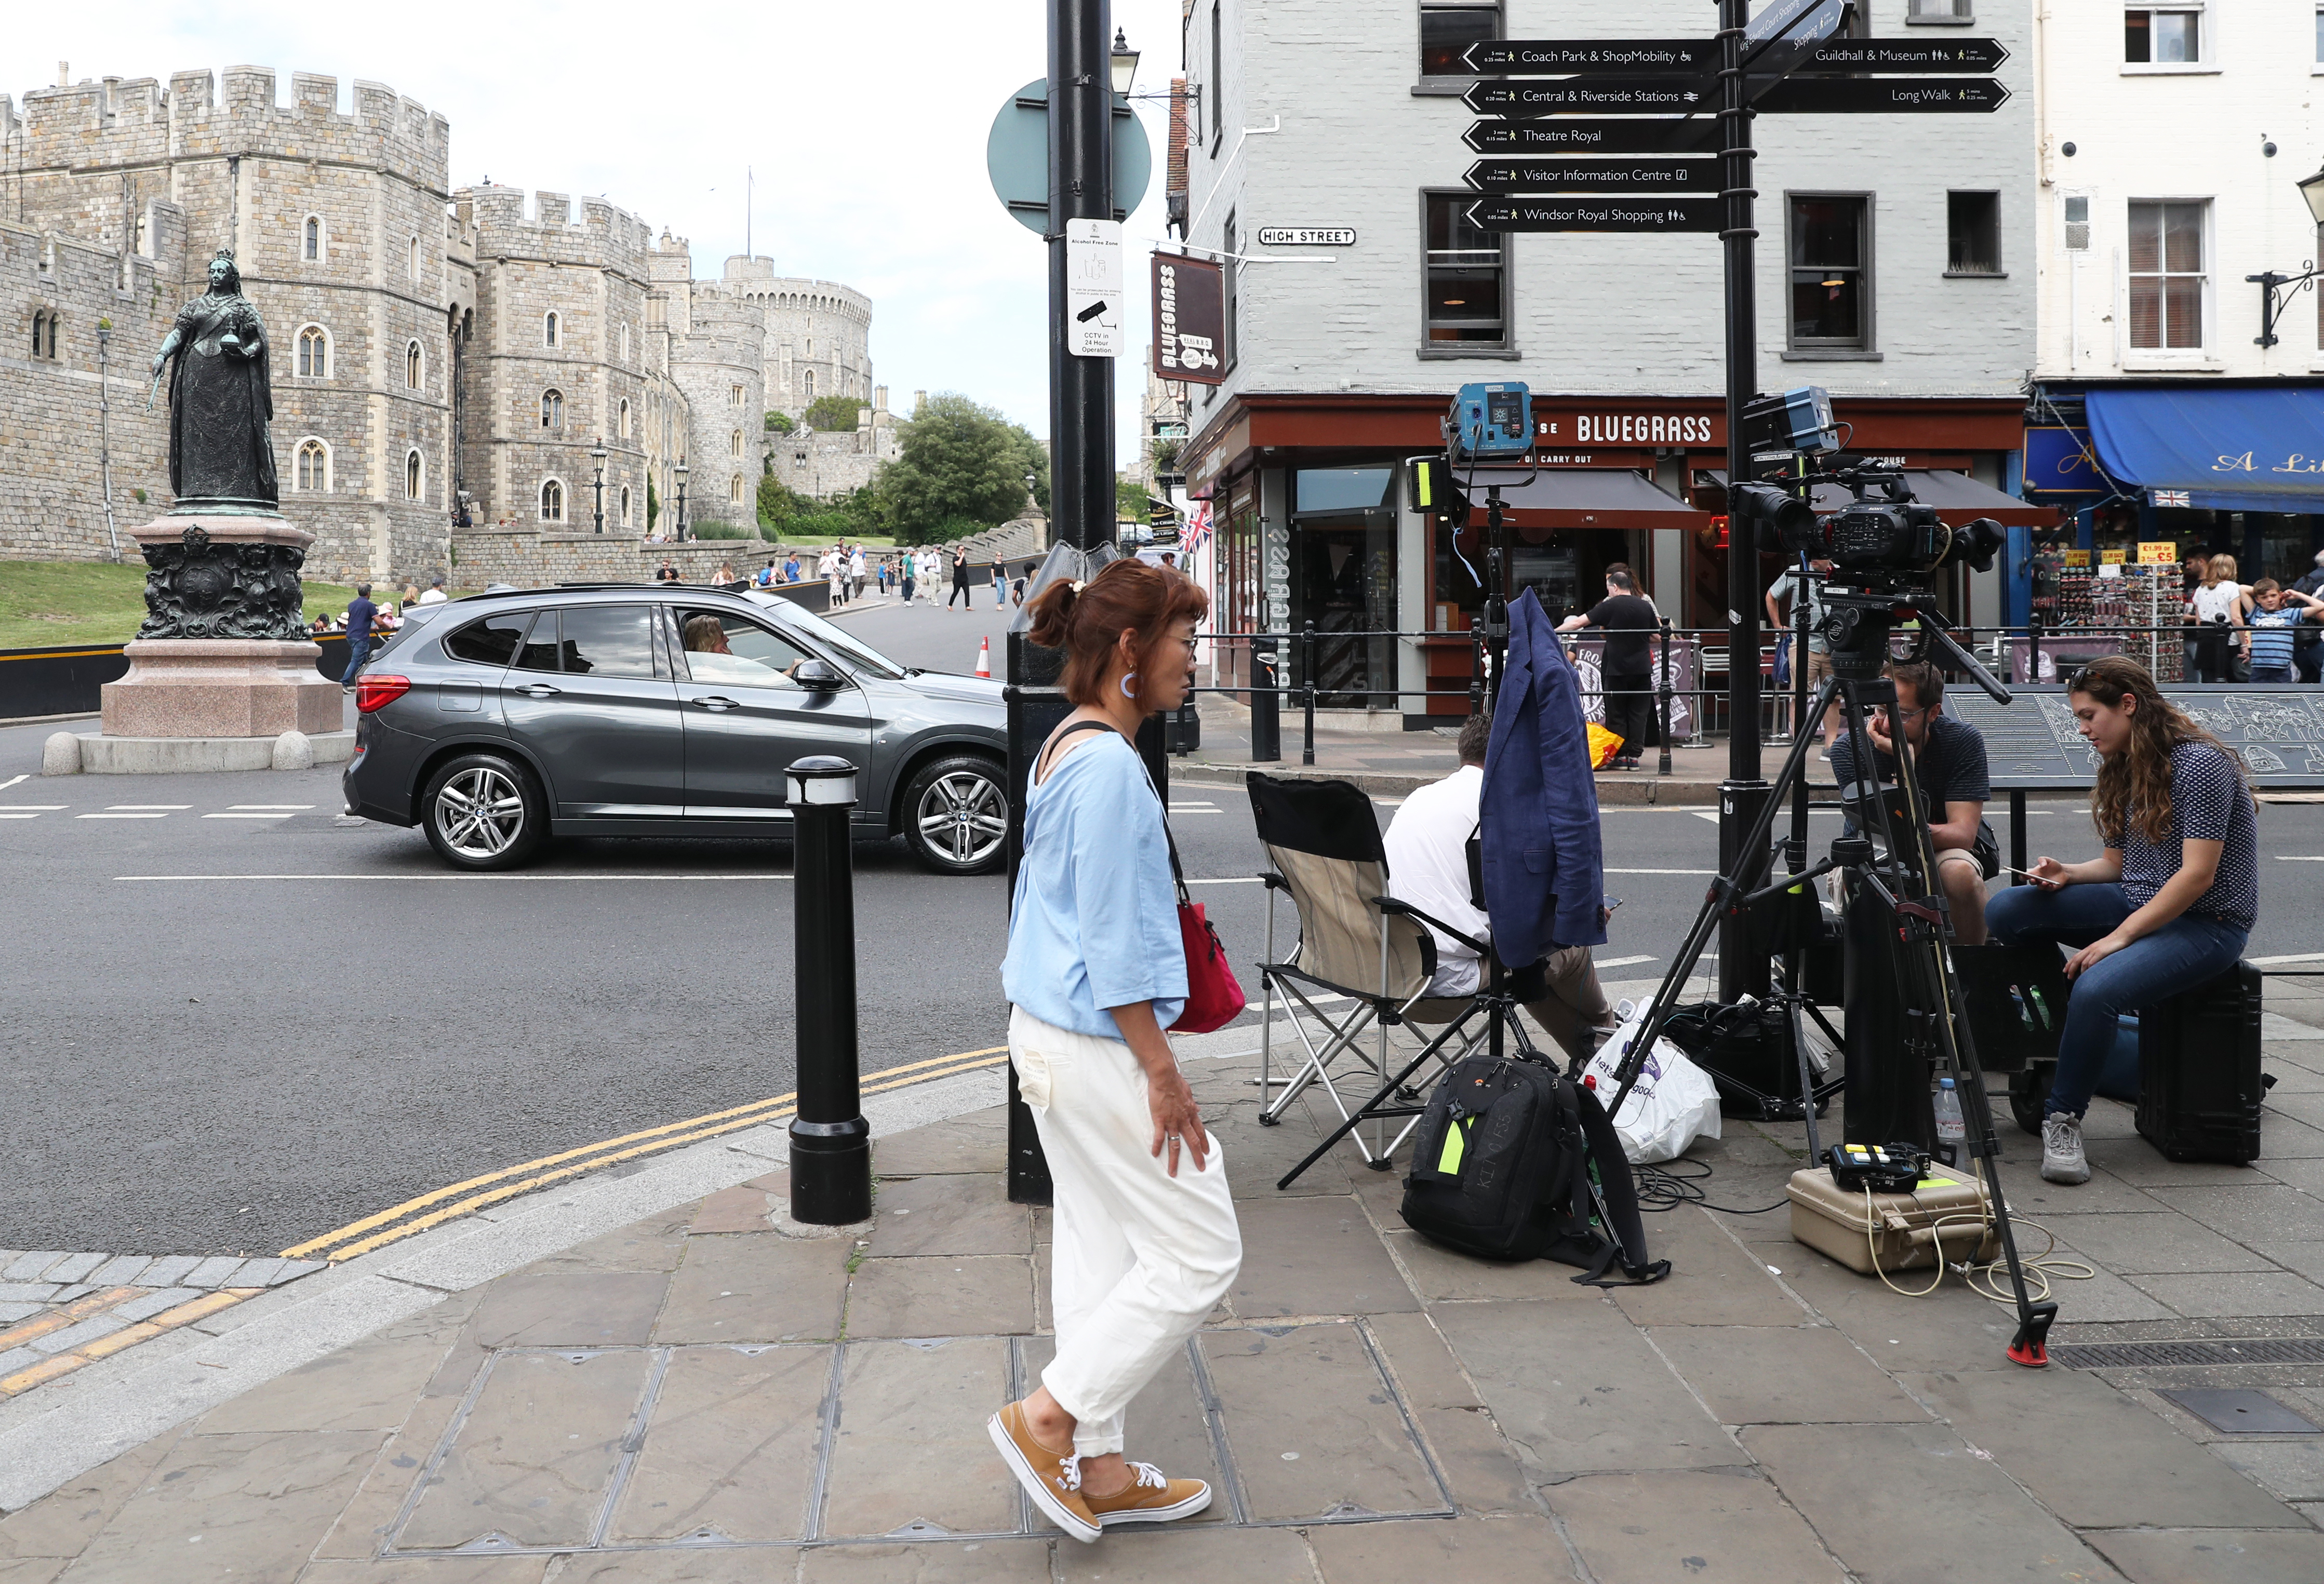 Camera crews set up in Windsor ahead of the royal christening of the Duke and Duchess of Sussex's son, Archie, at Windsor Castle tomorrow.